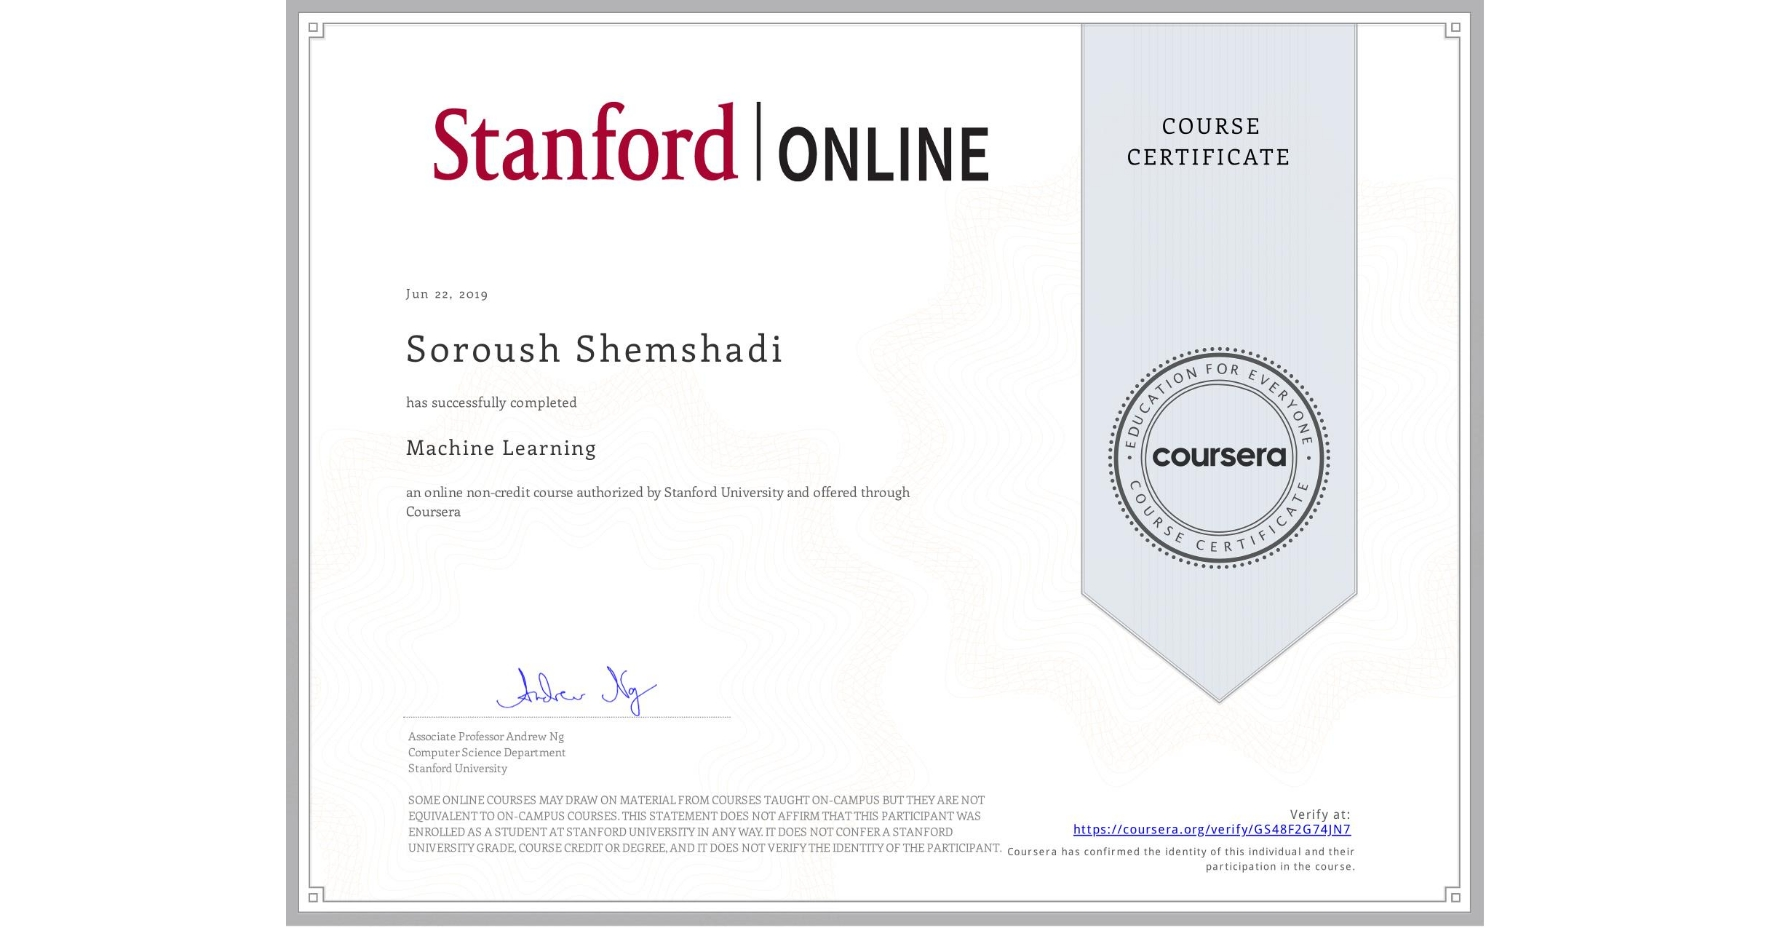 View certificate for Soroush Shemshadi, Machine Learning, an online non-credit course authorized by Stanford University and offered through Coursera